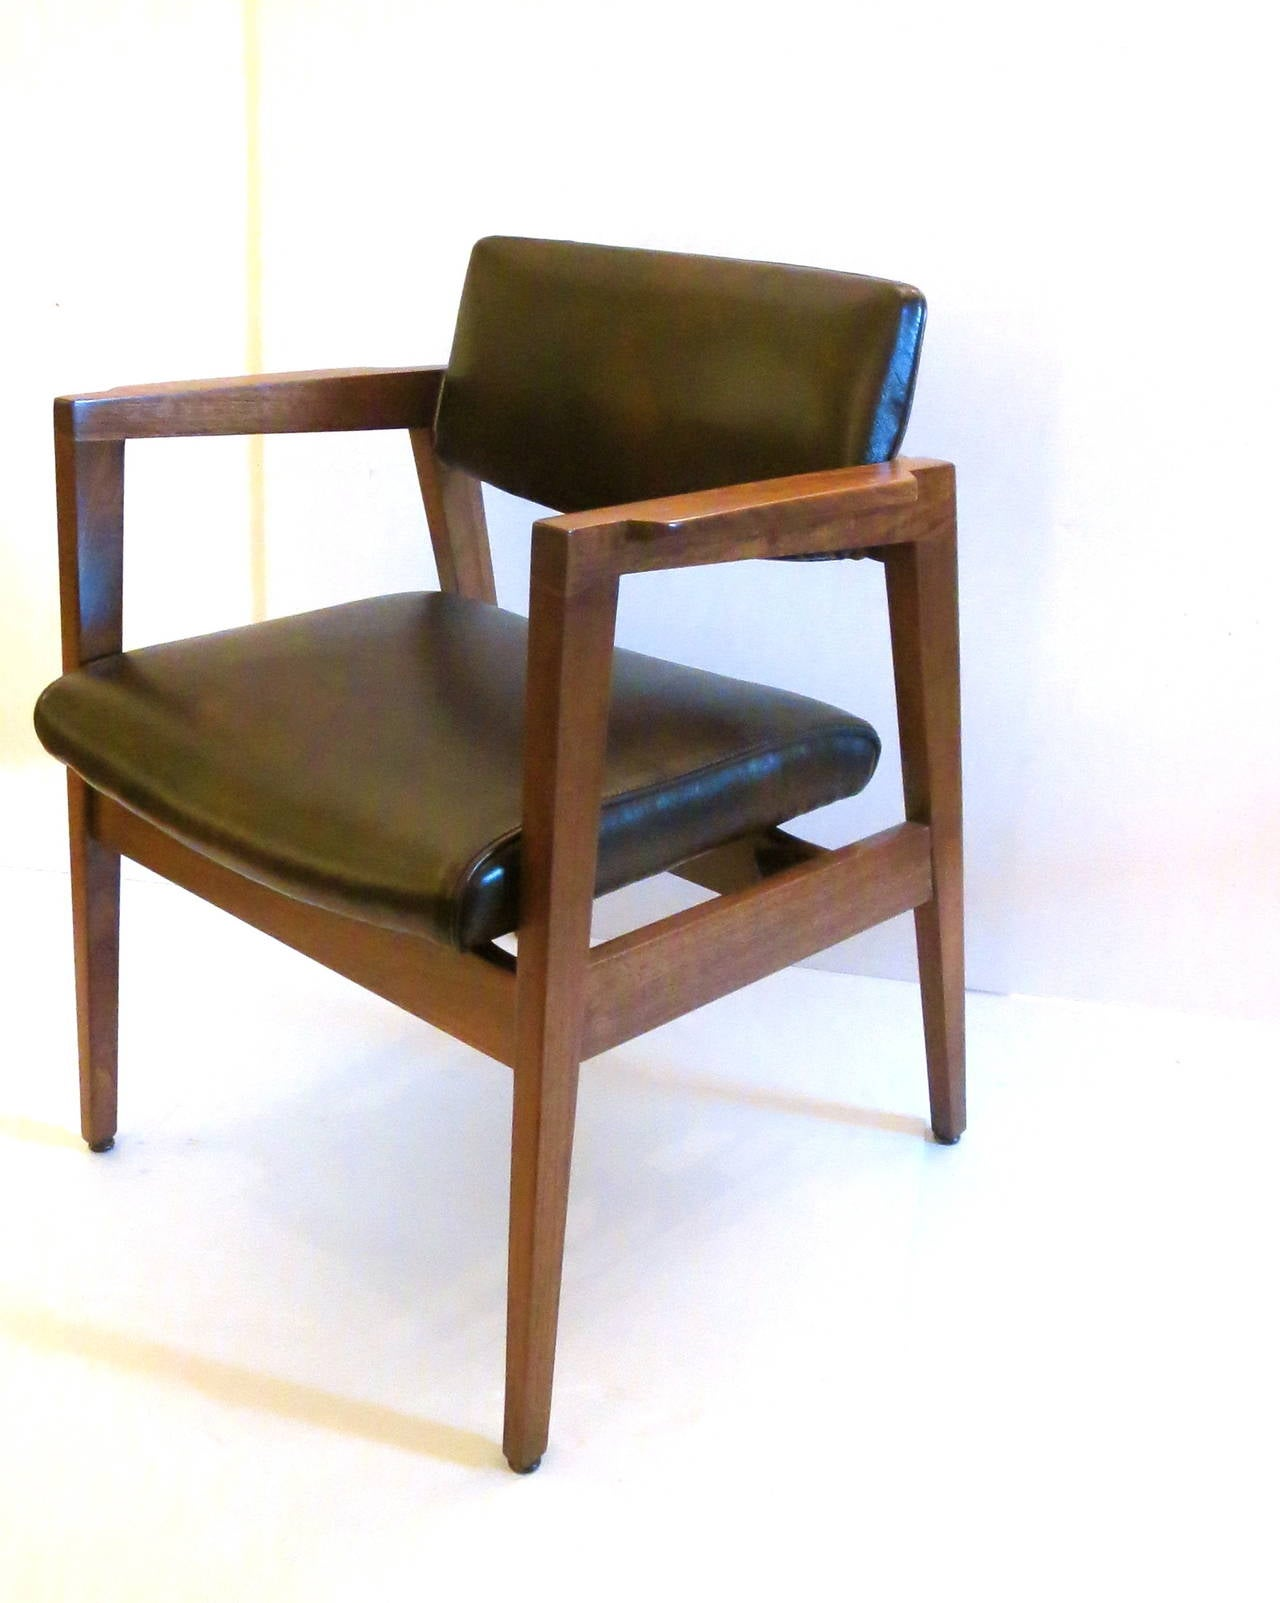 1950s American Modern Walnut And Leather Armchairs By